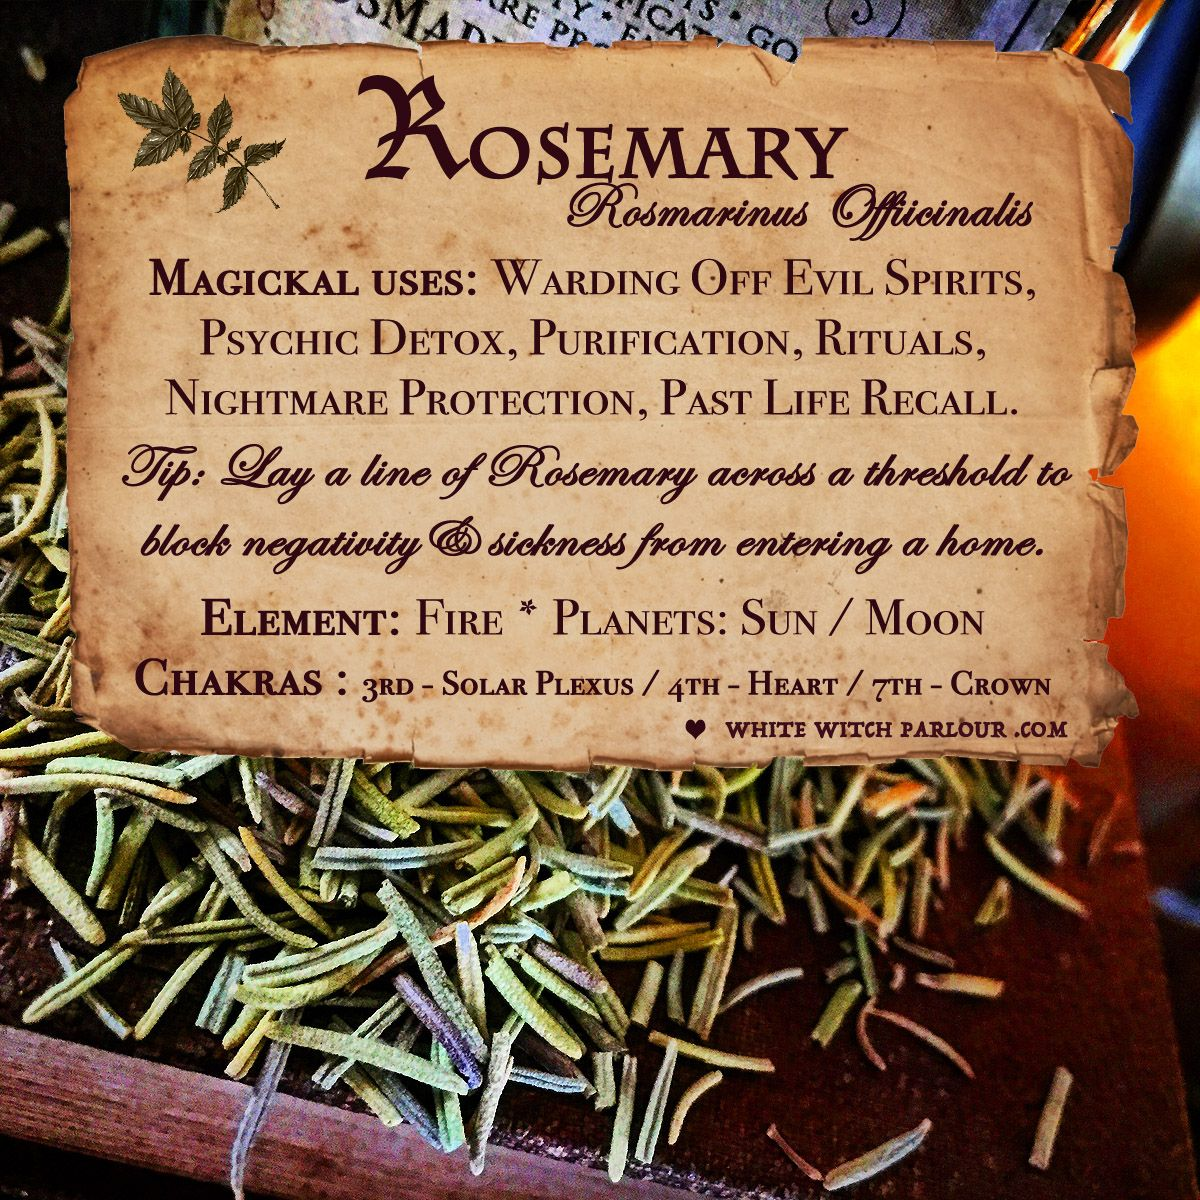 Rosemary Apothecary Dried Herbs For Warding Off Evil Spirits